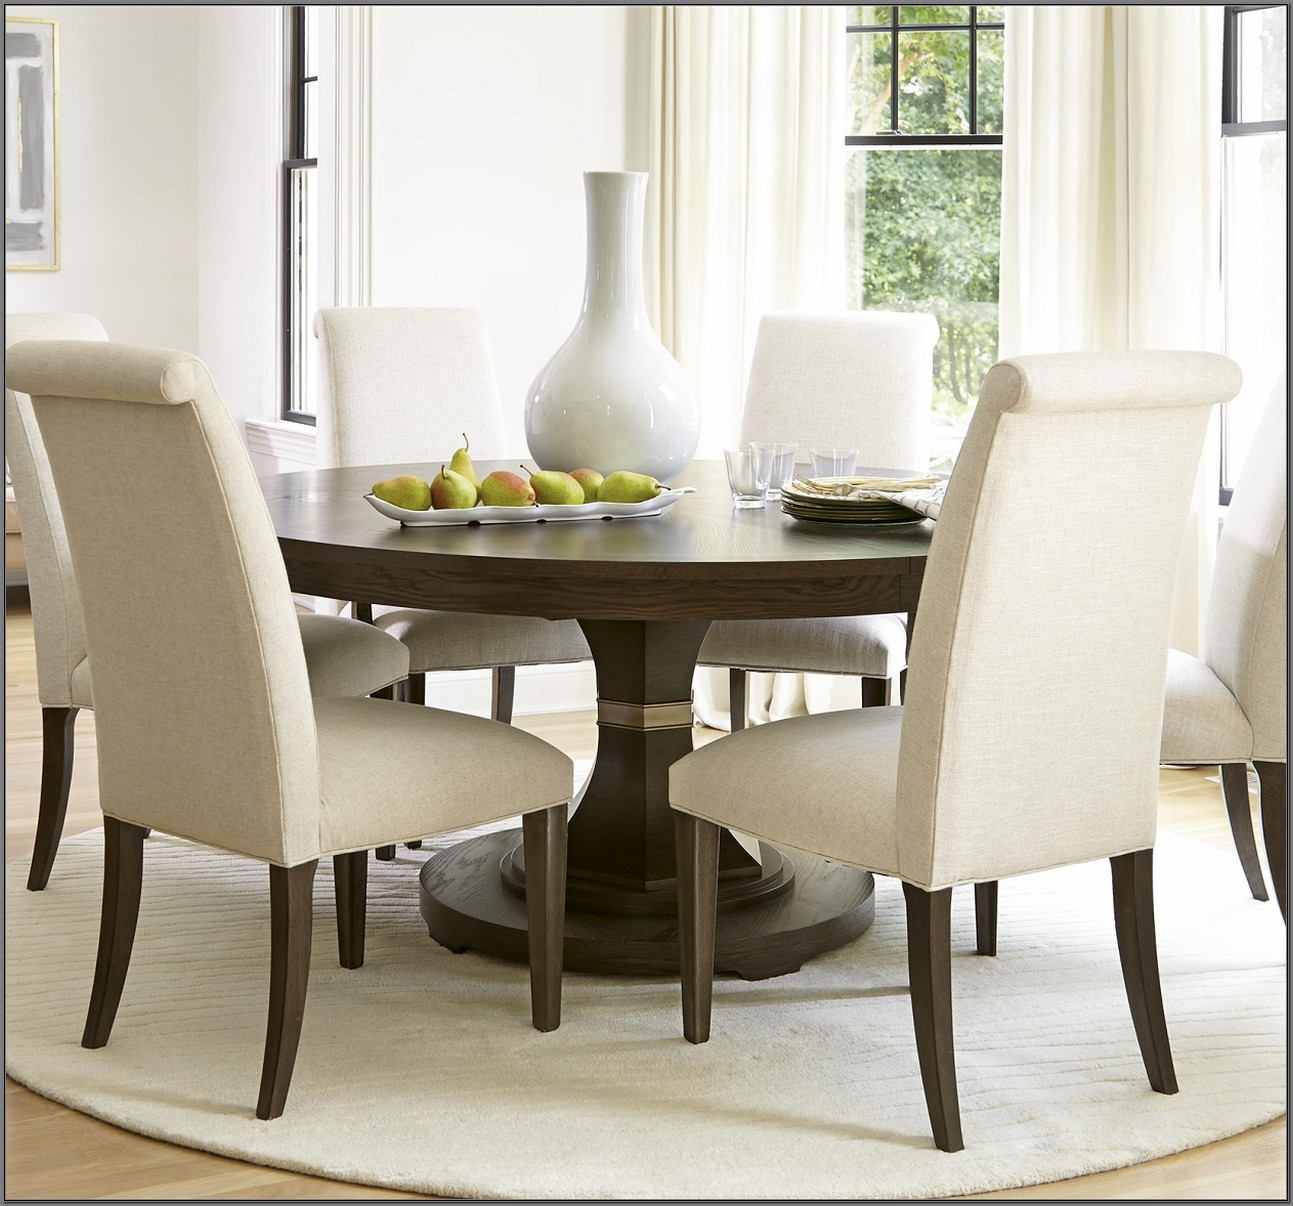 7 Piece Round Dining Room Set